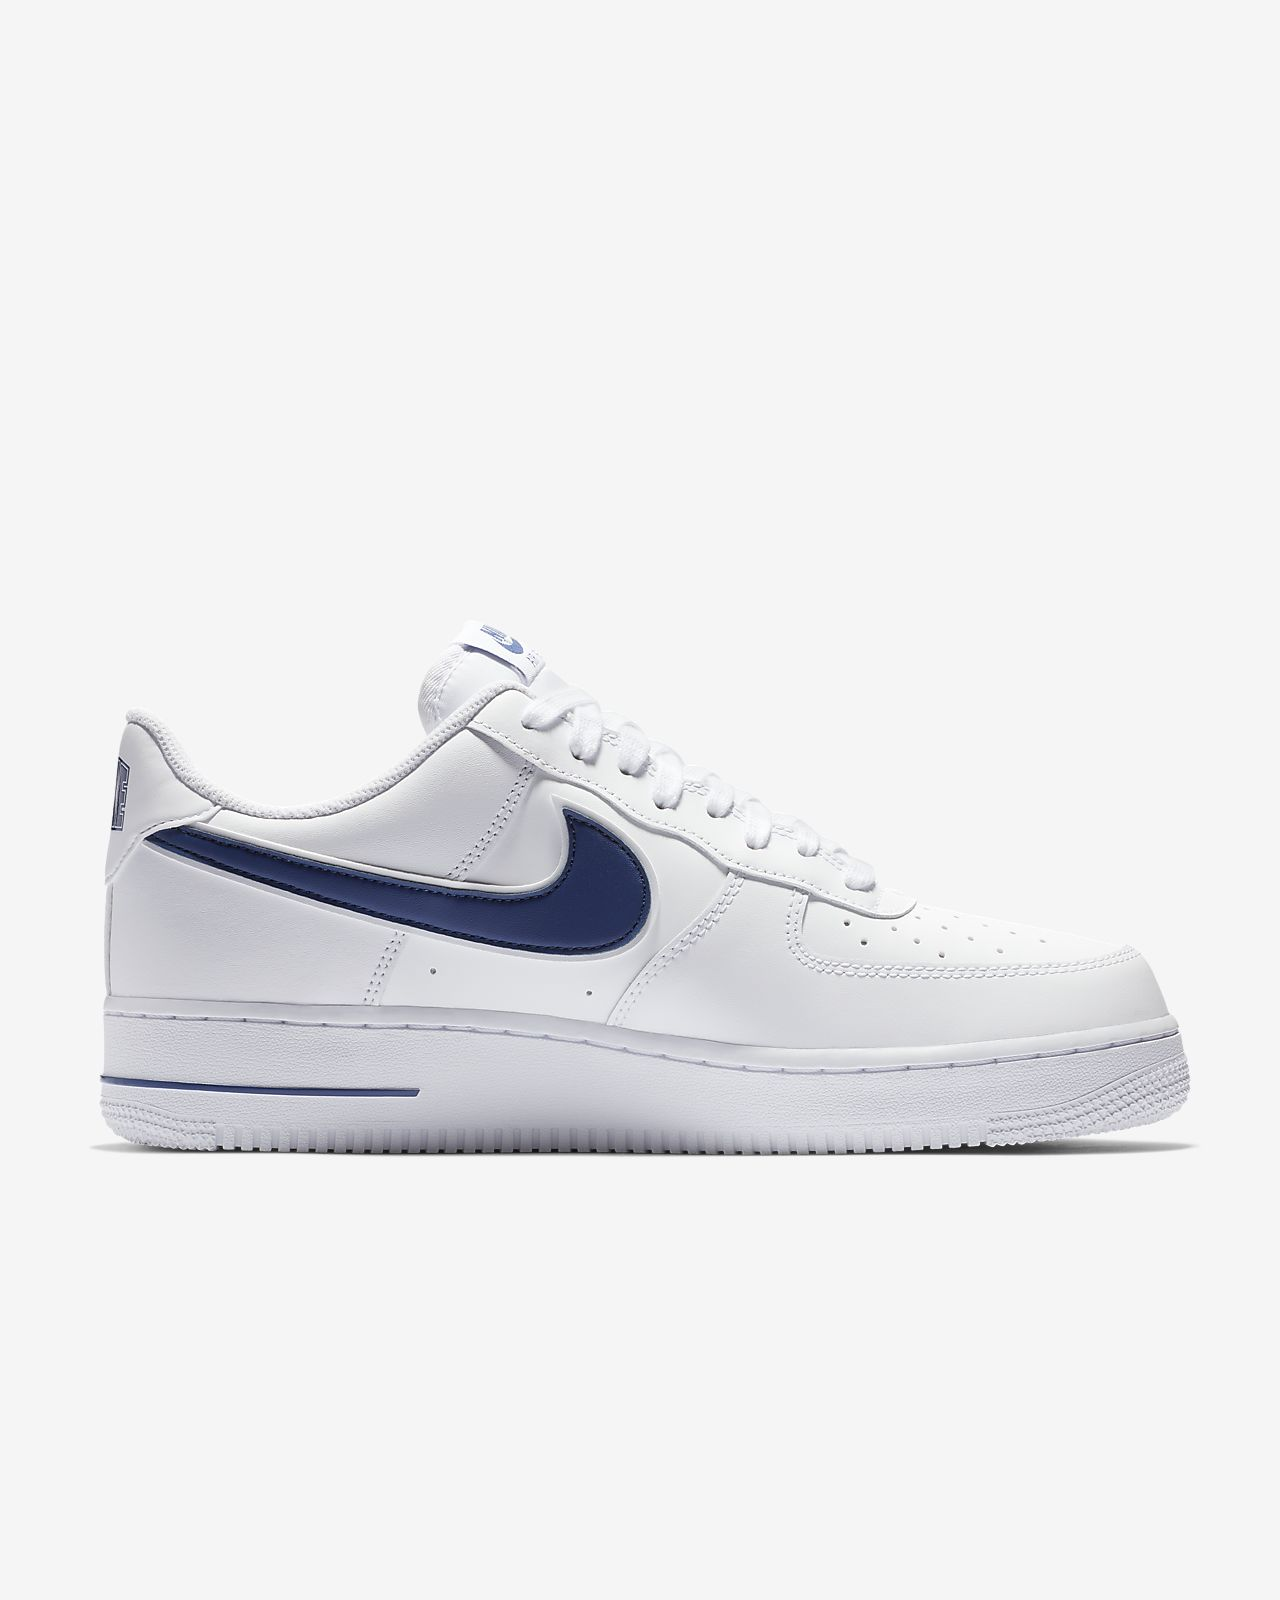 quality design e45b1 bf373 ... Chaussure Nike Air Force 1  07 pour Homme